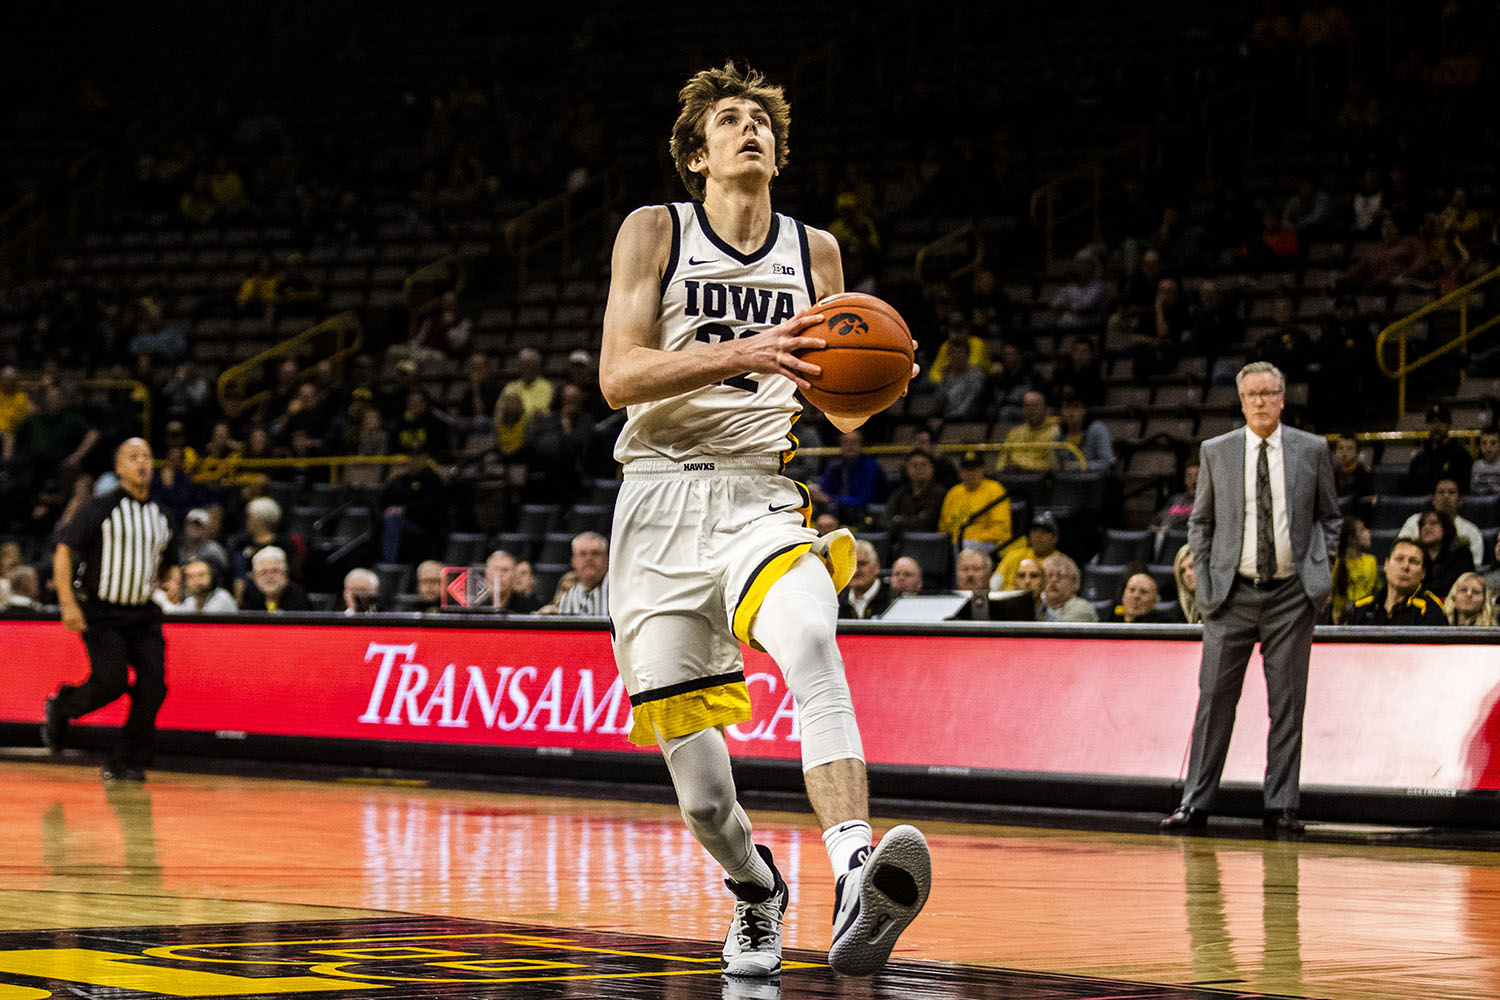 Iowa forward Patrick McCaffery prepares to shoot the ball during the men's basketball game against Lindsey Wilson College at Carver-Hawkeye Arena on Monday, November 4, 2019. The Hawkeyes defeated the Blue Raiders 96-58.